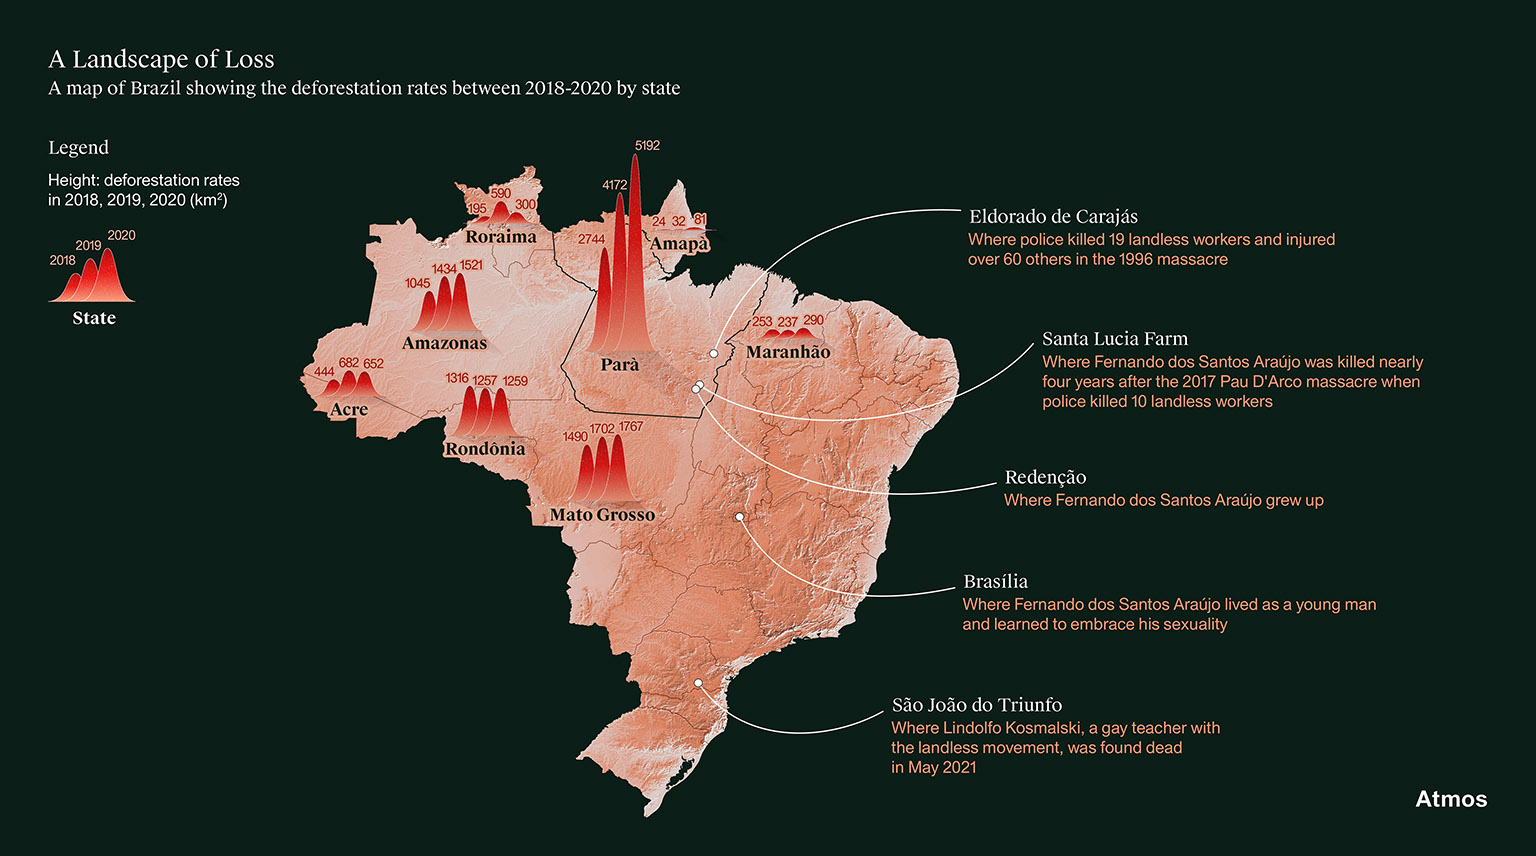 A map of Brazil showing the deforestation rates between 2018-2020 by state, as well as locations mentioned throughout the story. Data by Brazil National Institute for Space Research.